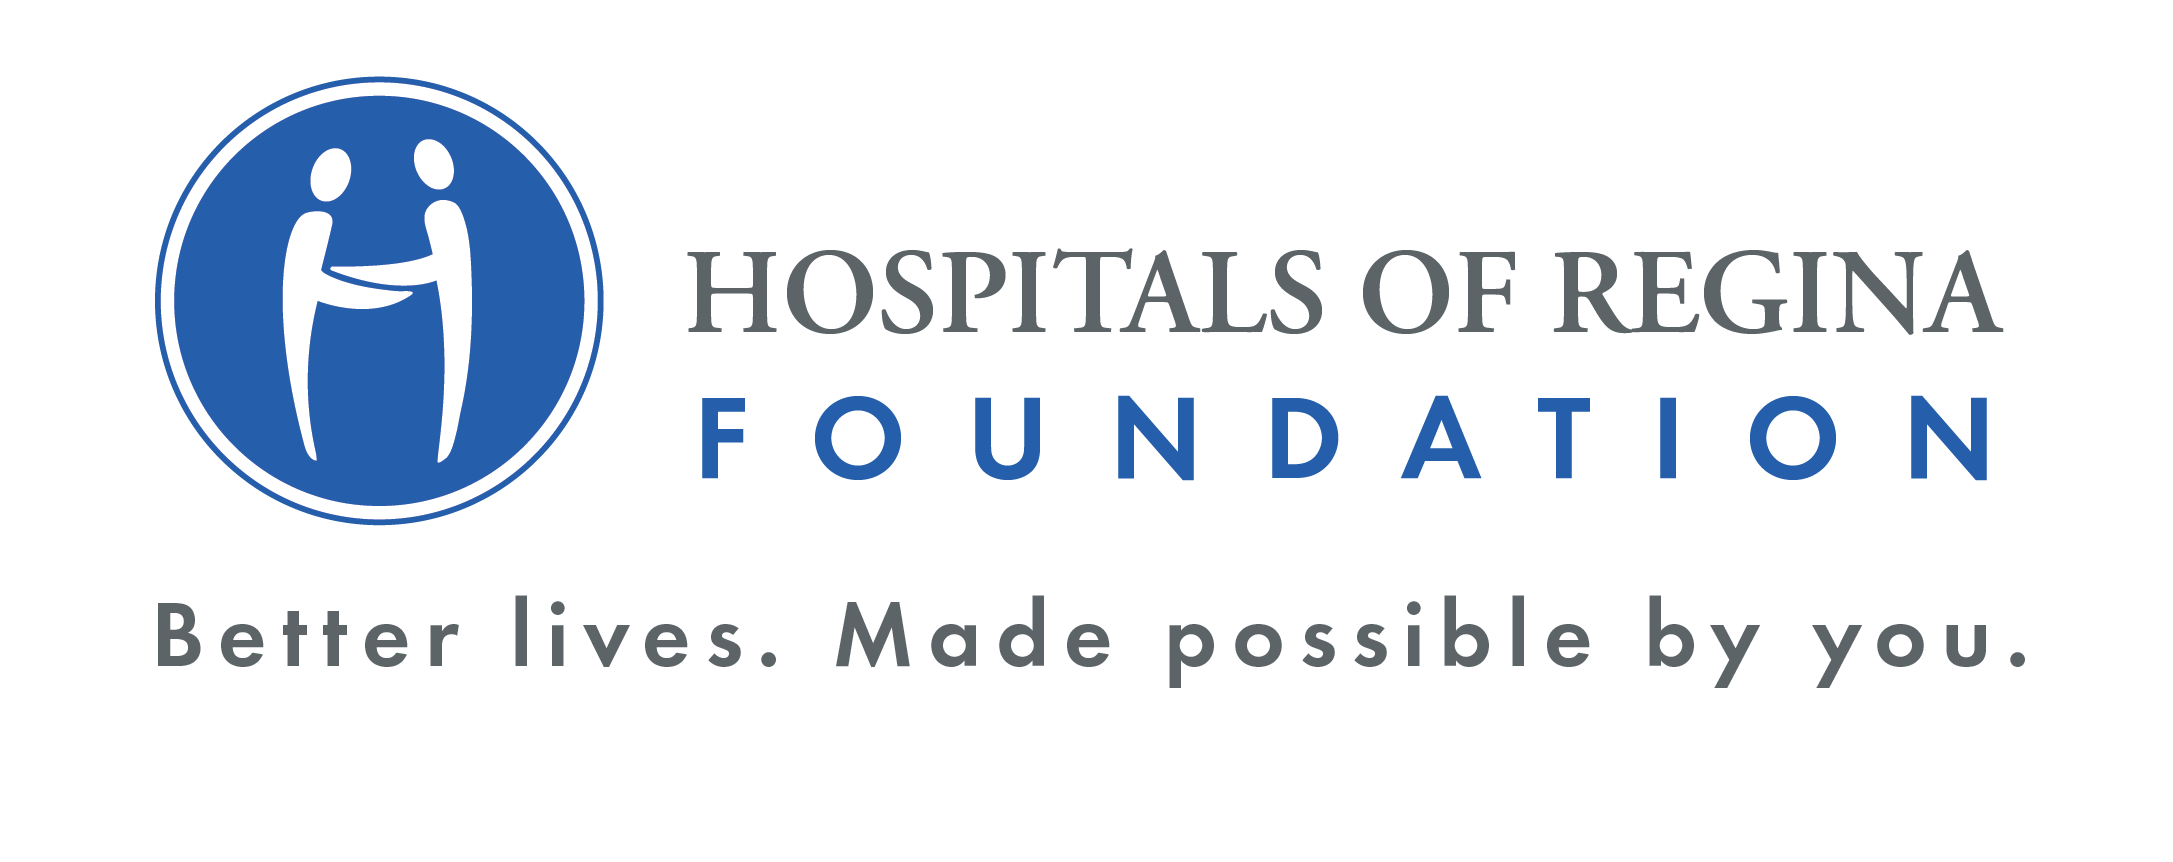 Hospitals of Regina Foundation